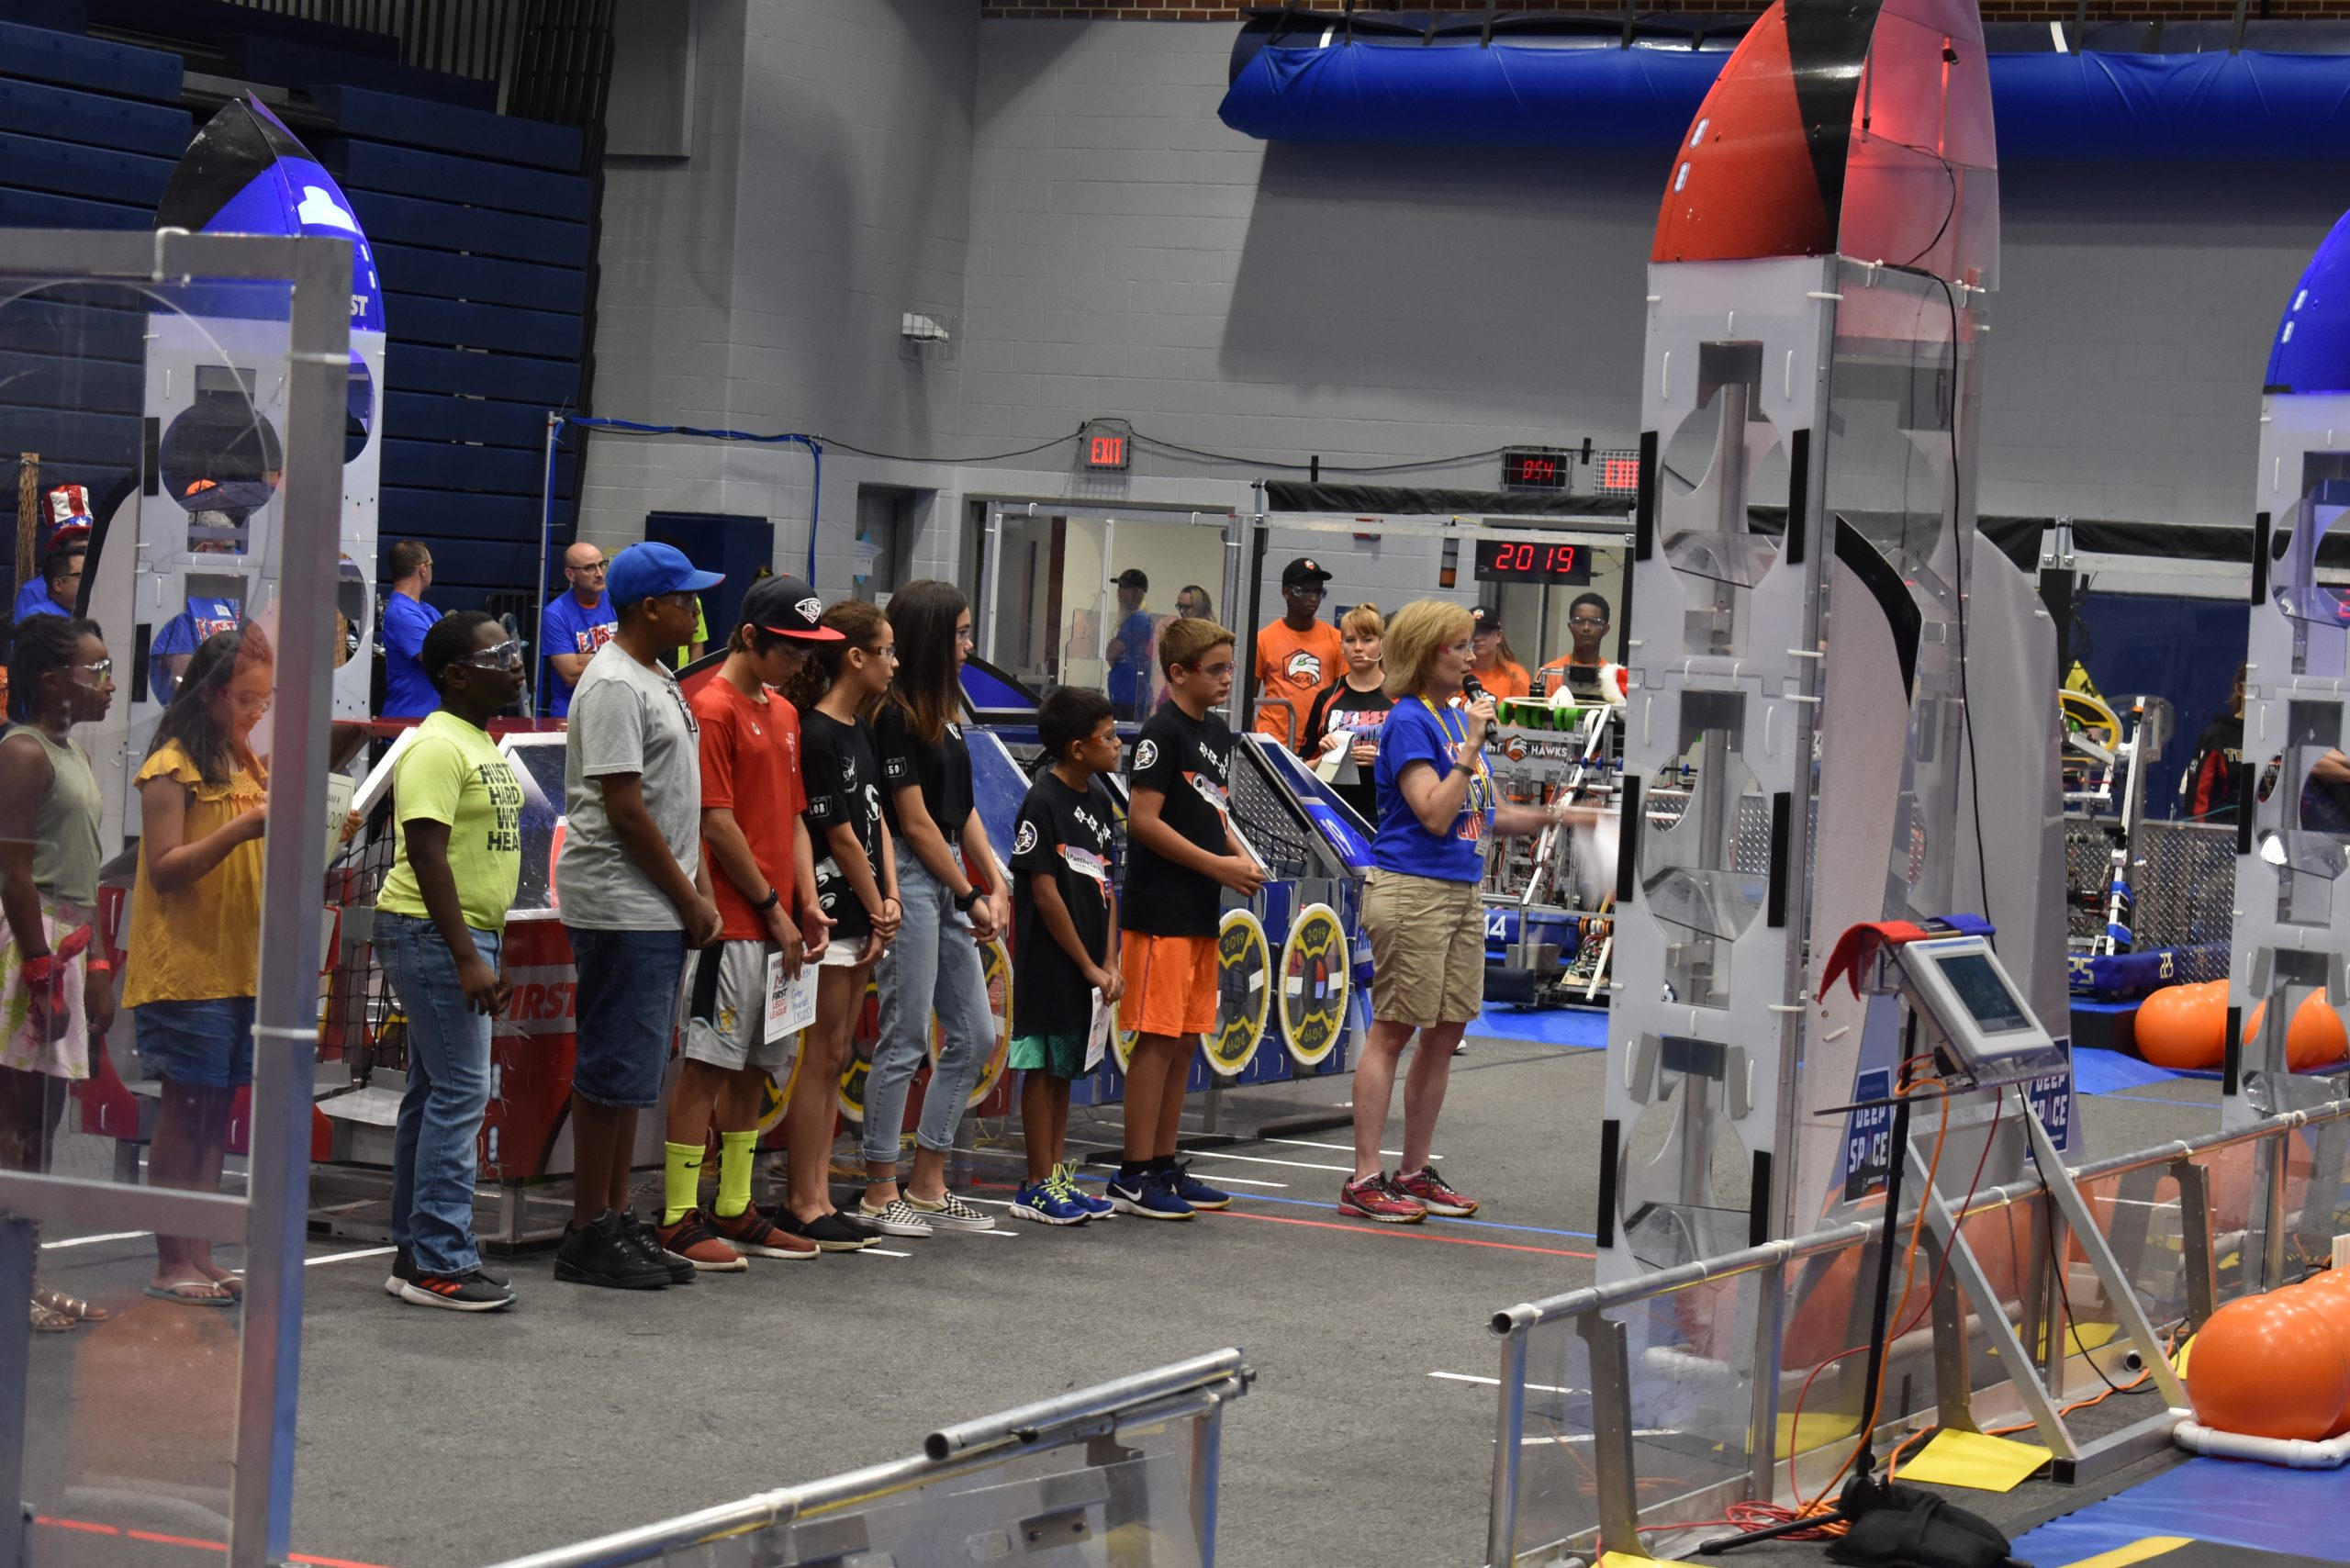 FRC event at DHS